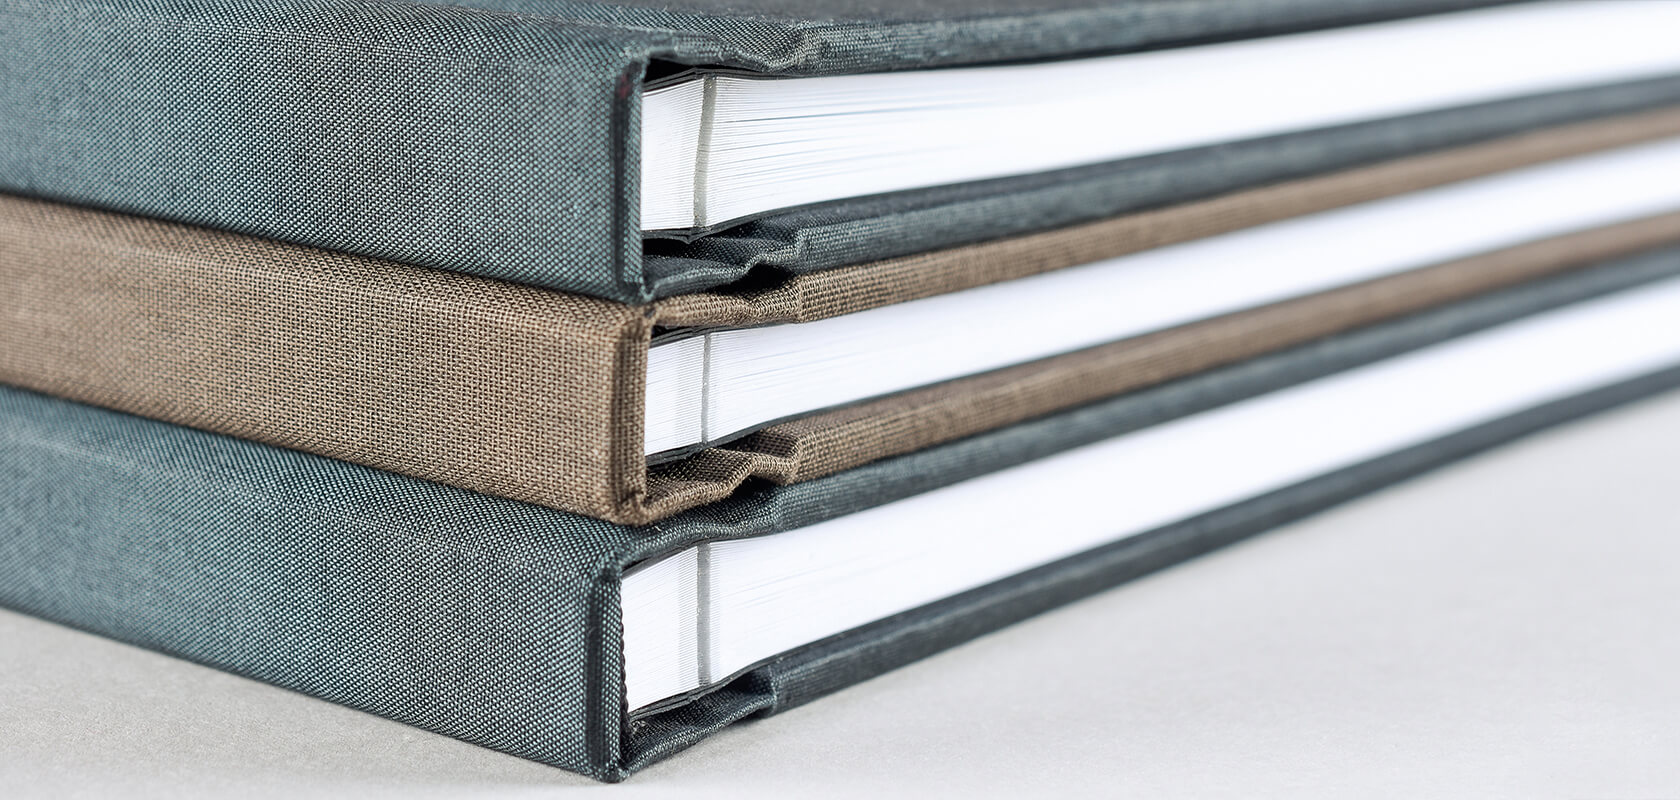 Masterful bookbinding solutions